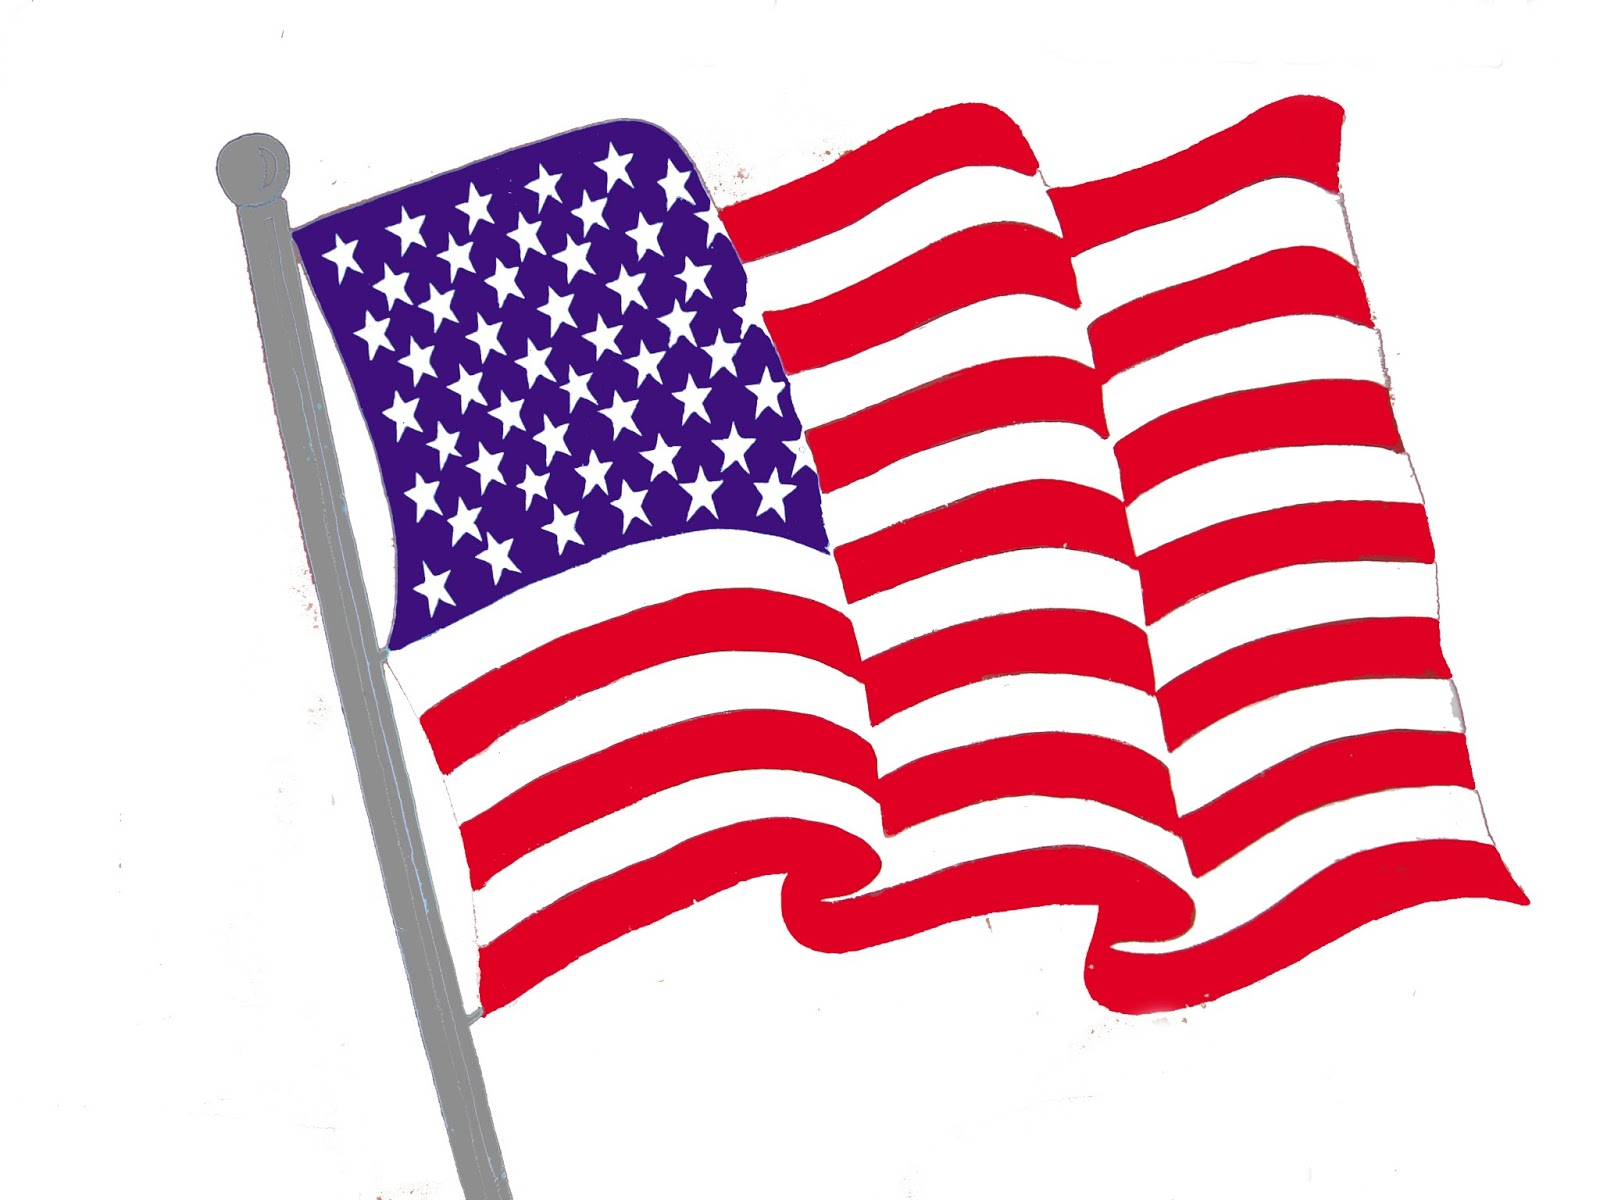 usa flag hd wallpapers download Fine HD Wallpapers   Download 1600x1200